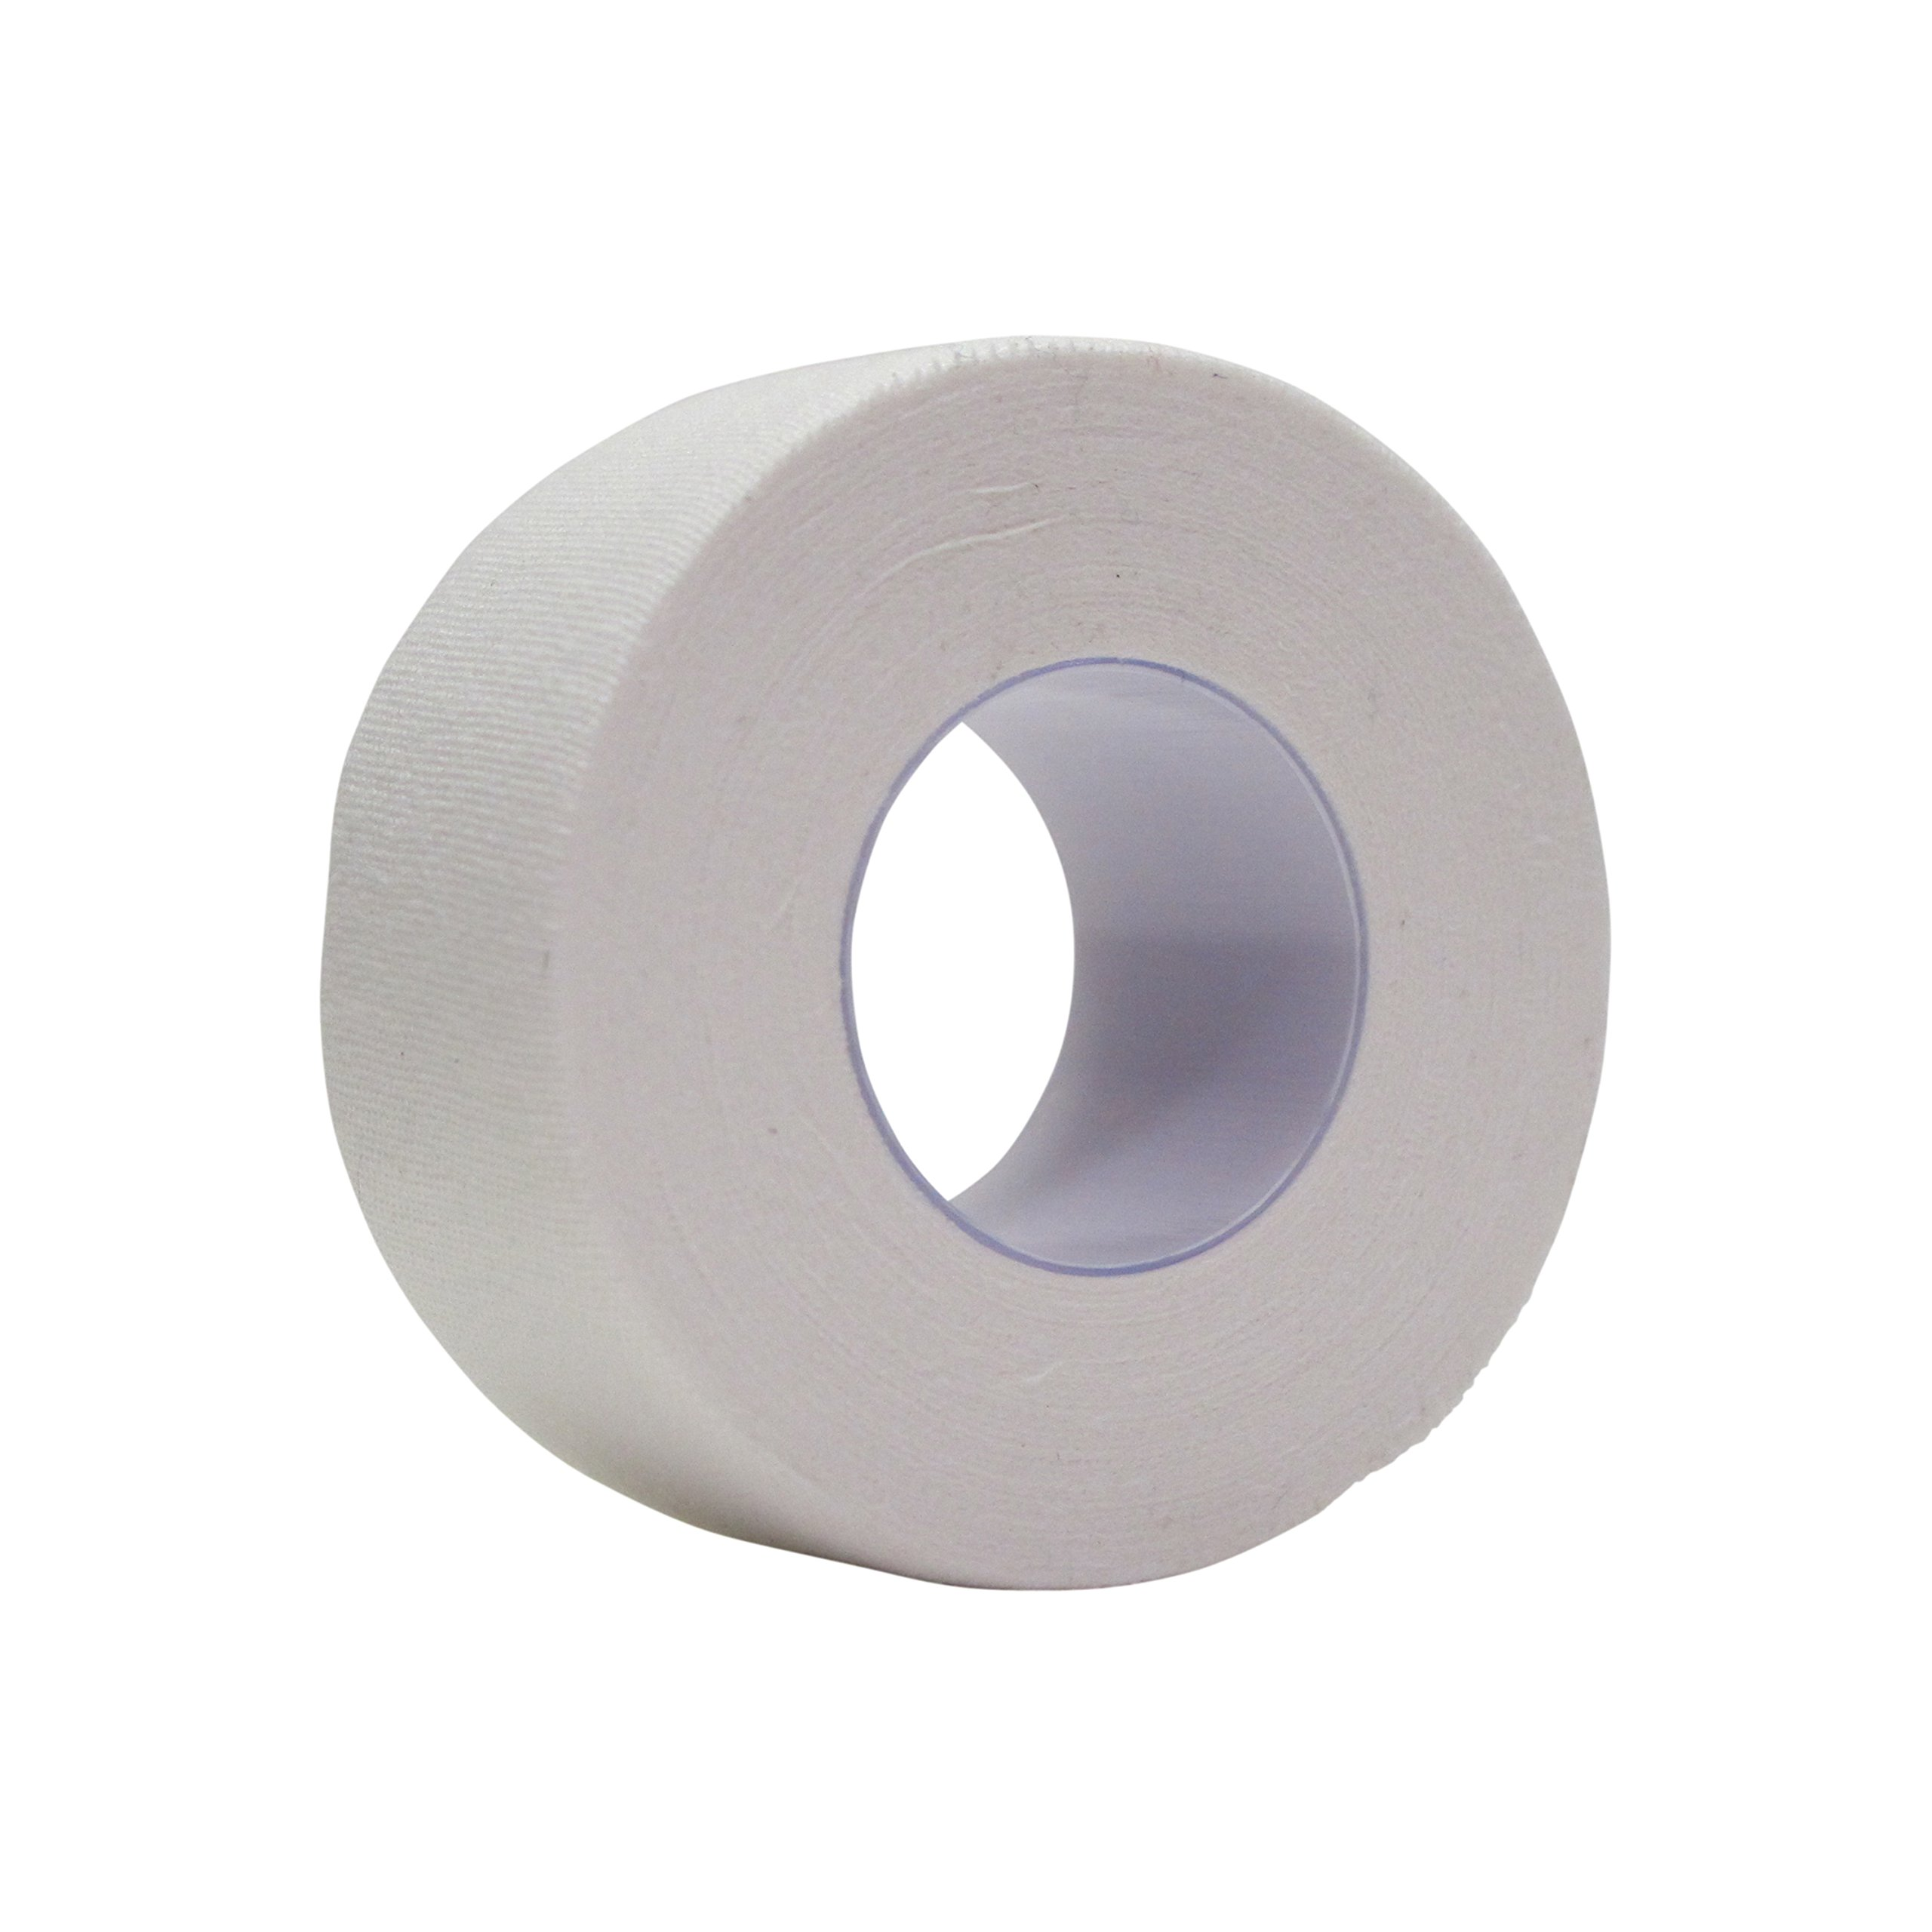 Adventure Medical Kits Tape 1in x 10yds